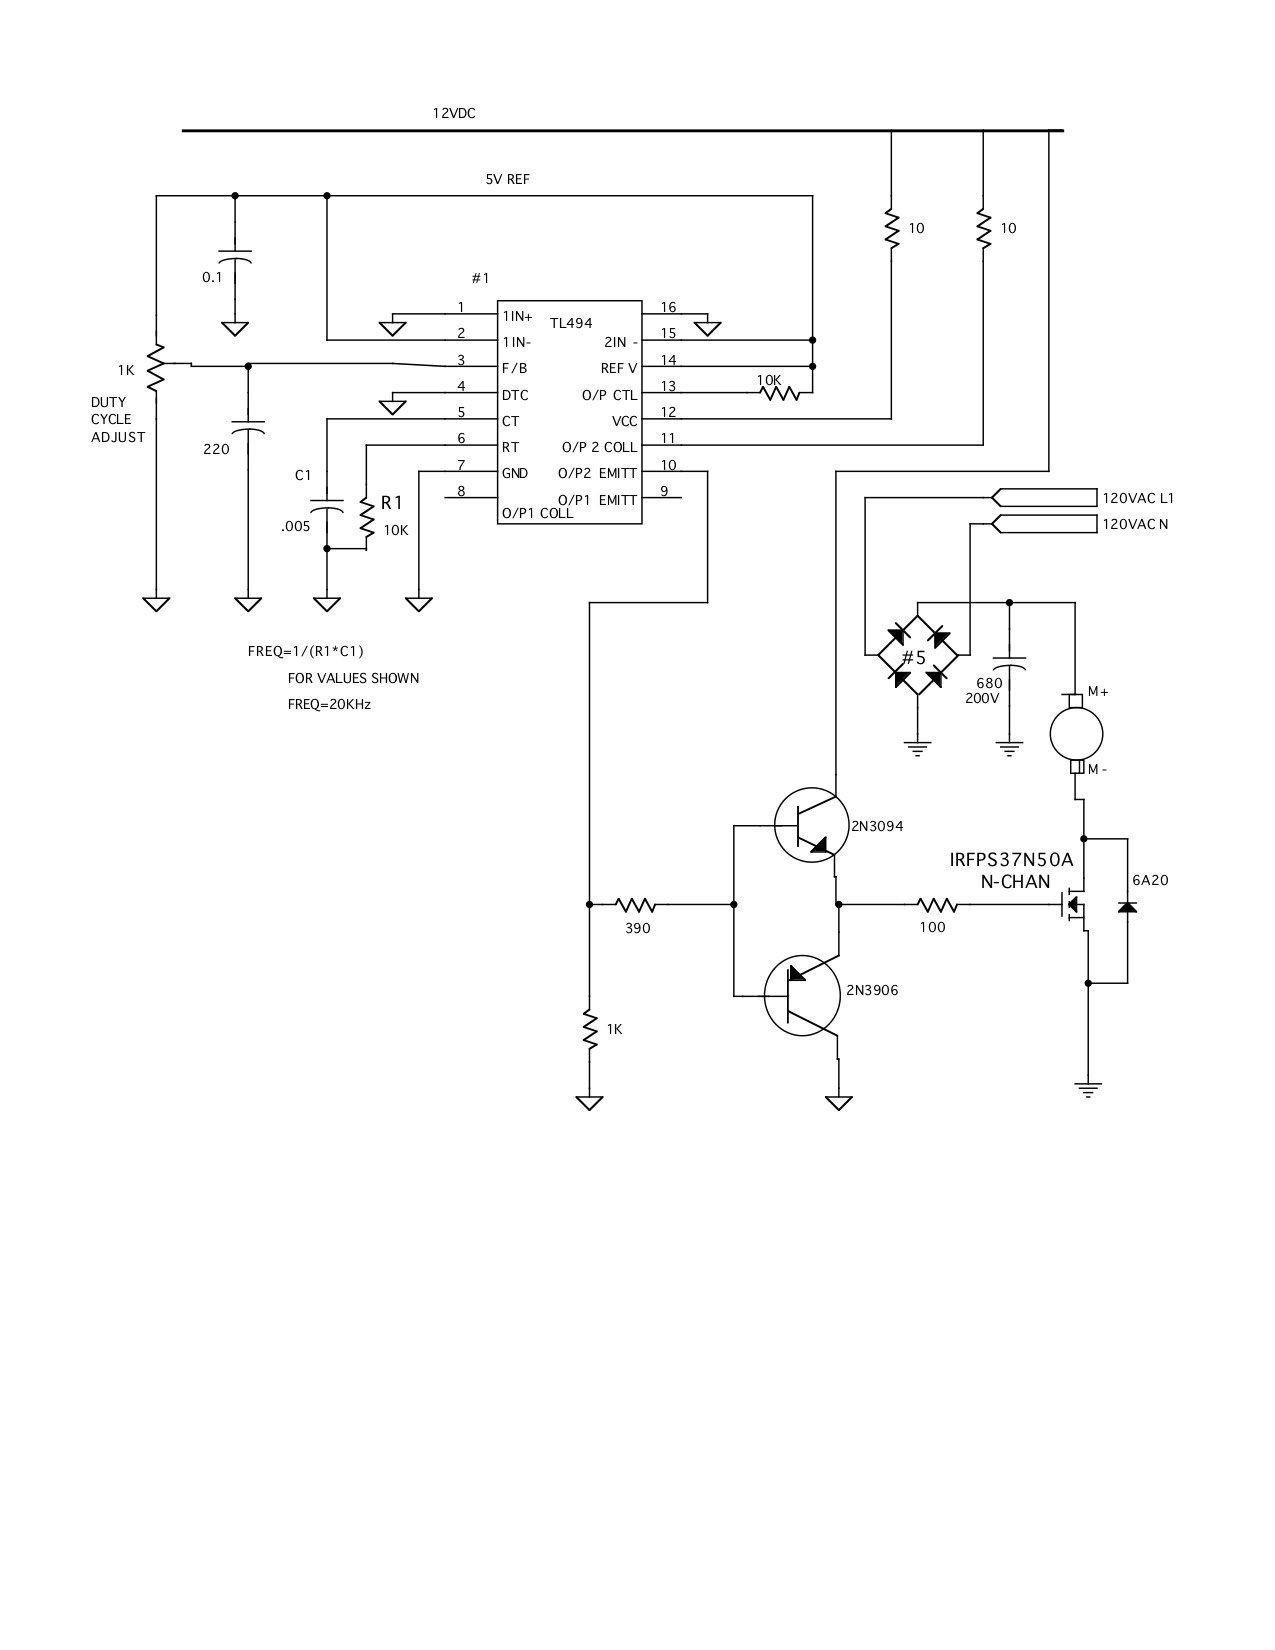 Pwm Circuit For Dc Motors Such As Treadmill Values Are Not New To Electronics 12vdc Supply From 120vac How Does It Work Critical Much